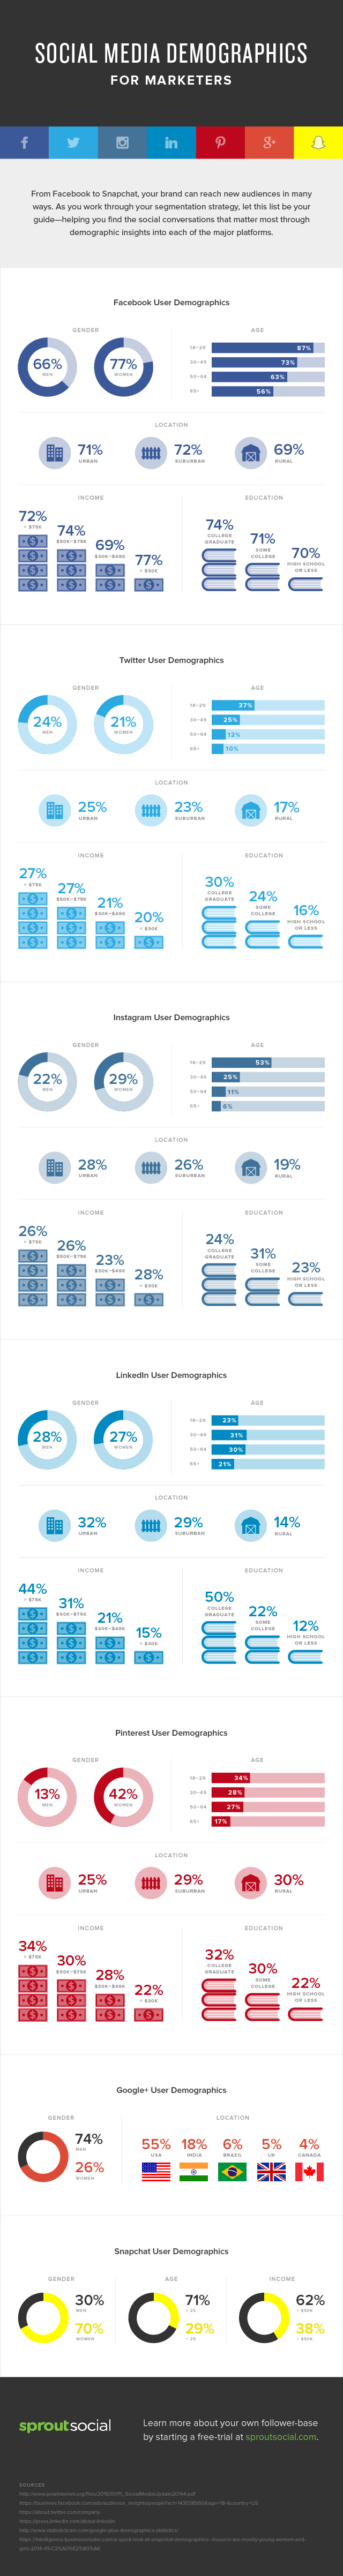 What Social Media Platform Is Right For You These Stats Will Tell You